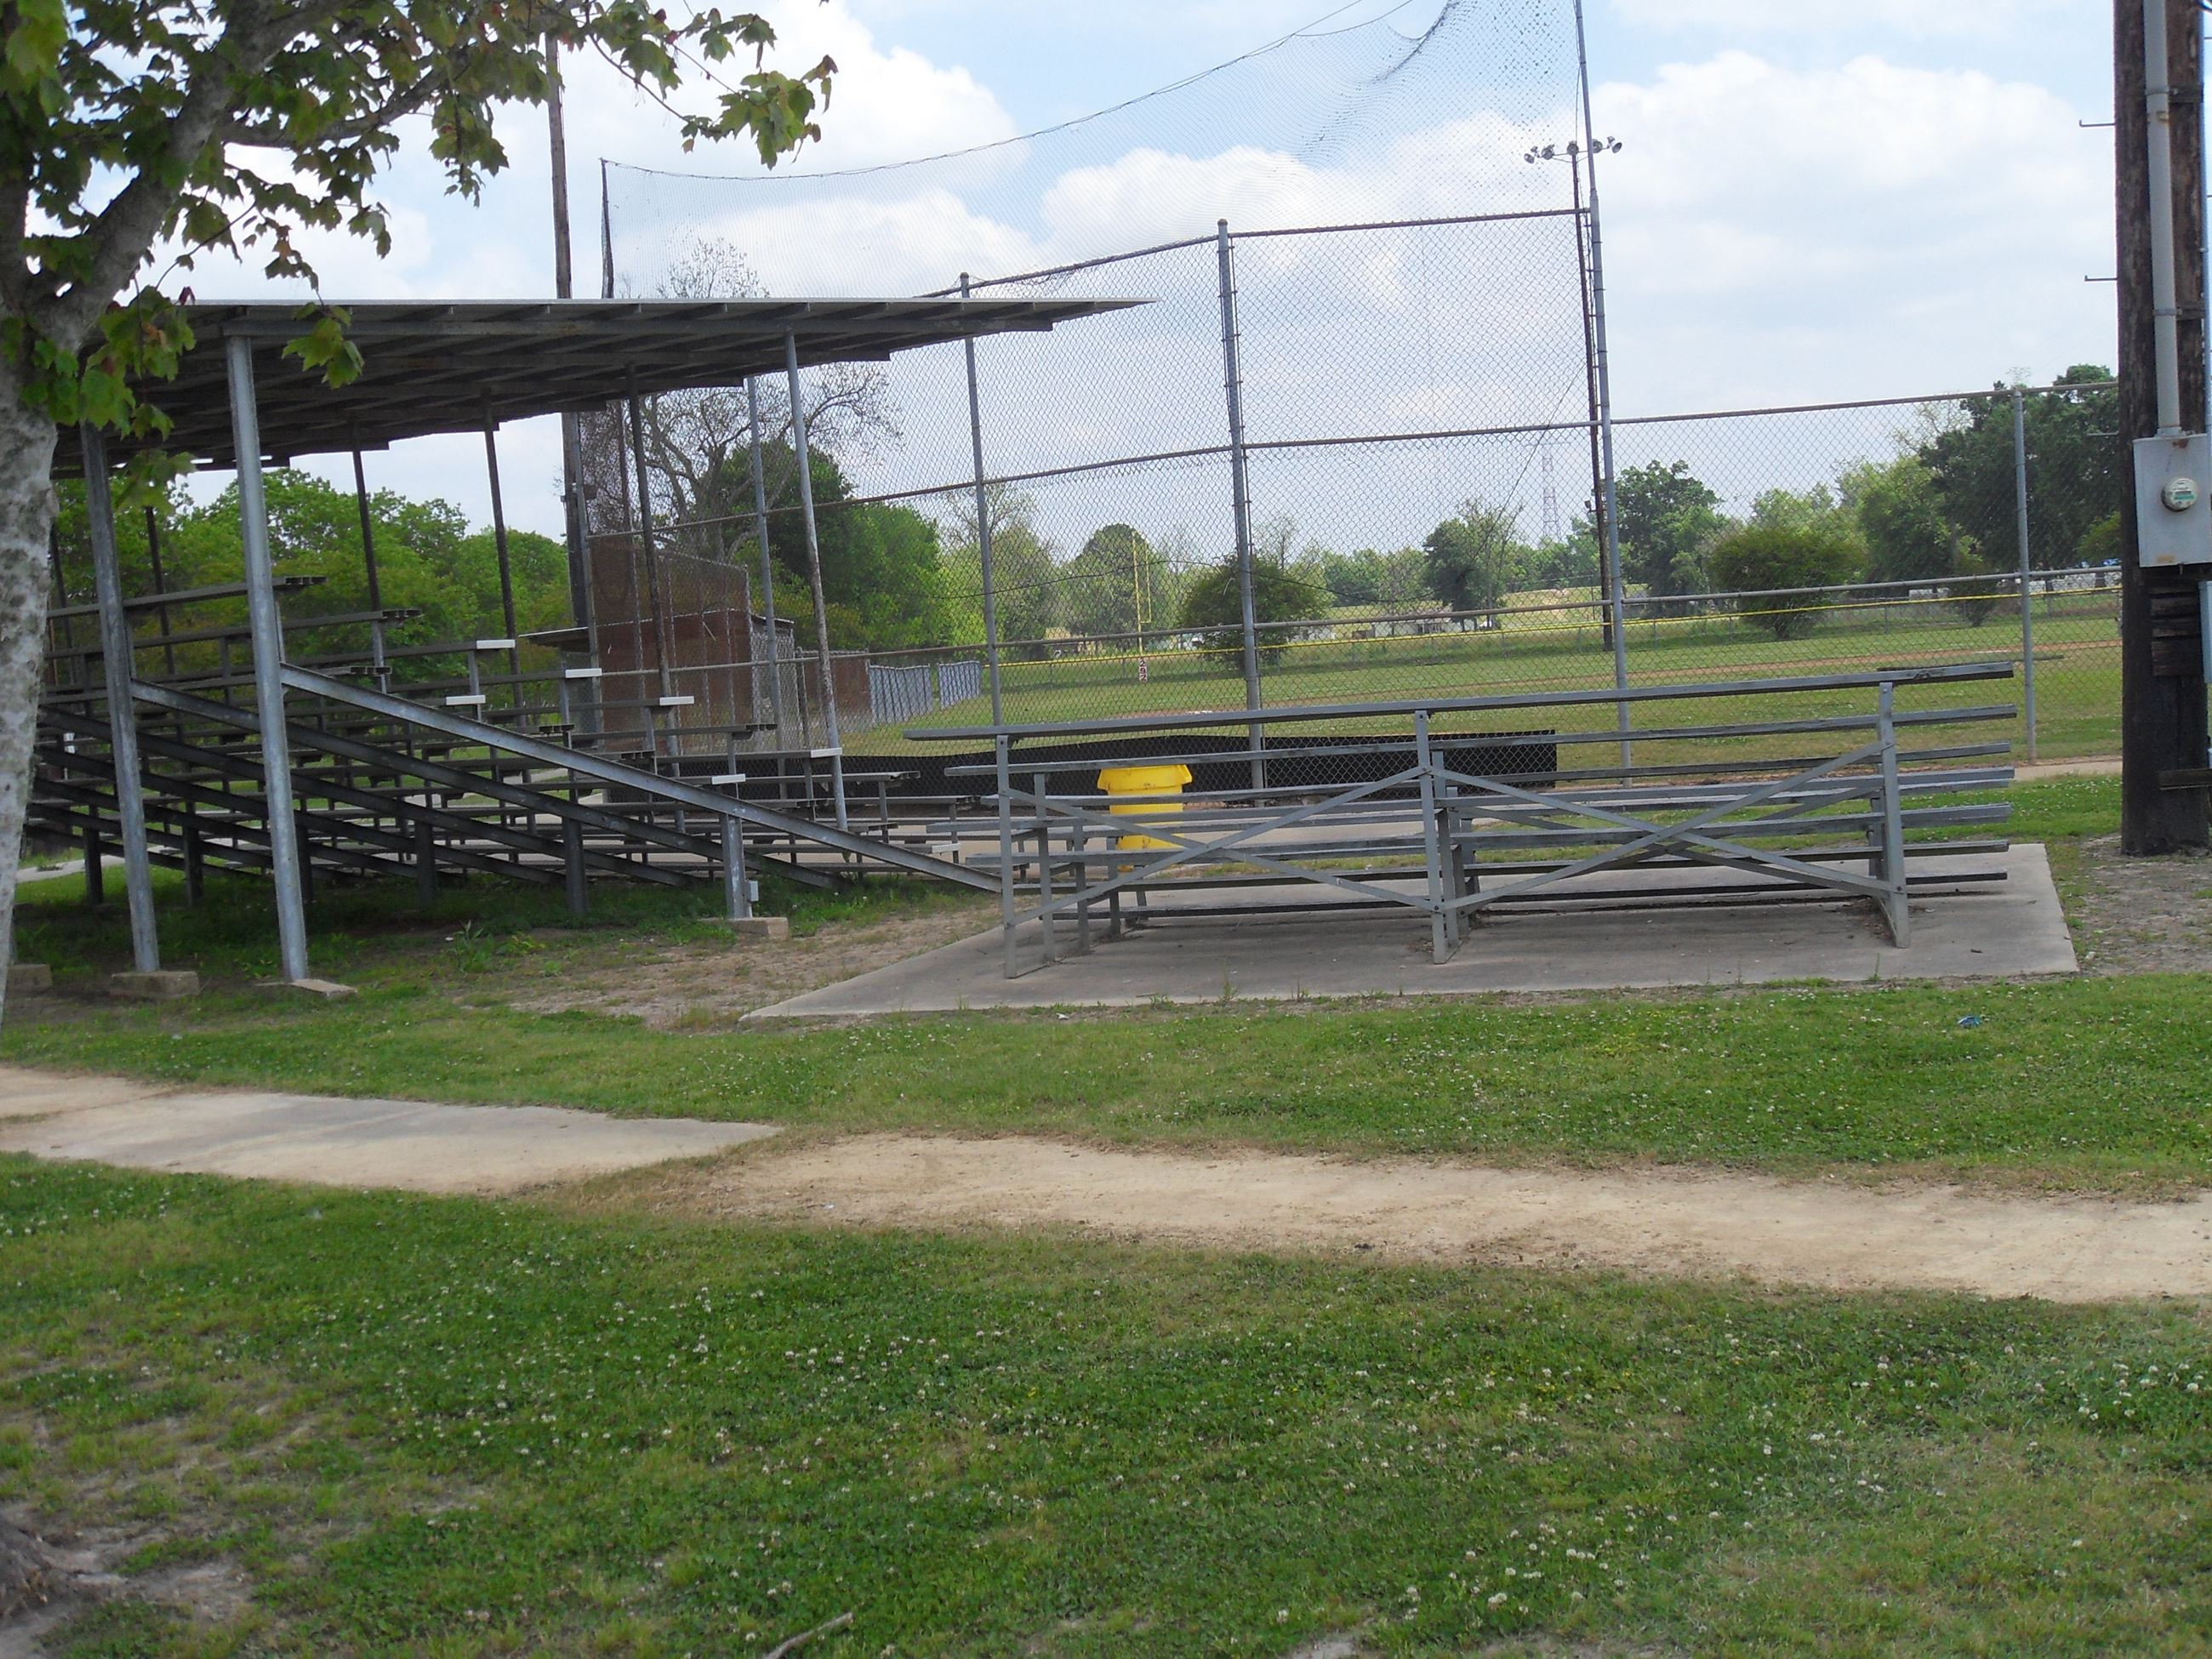 Bleachers at baseball field